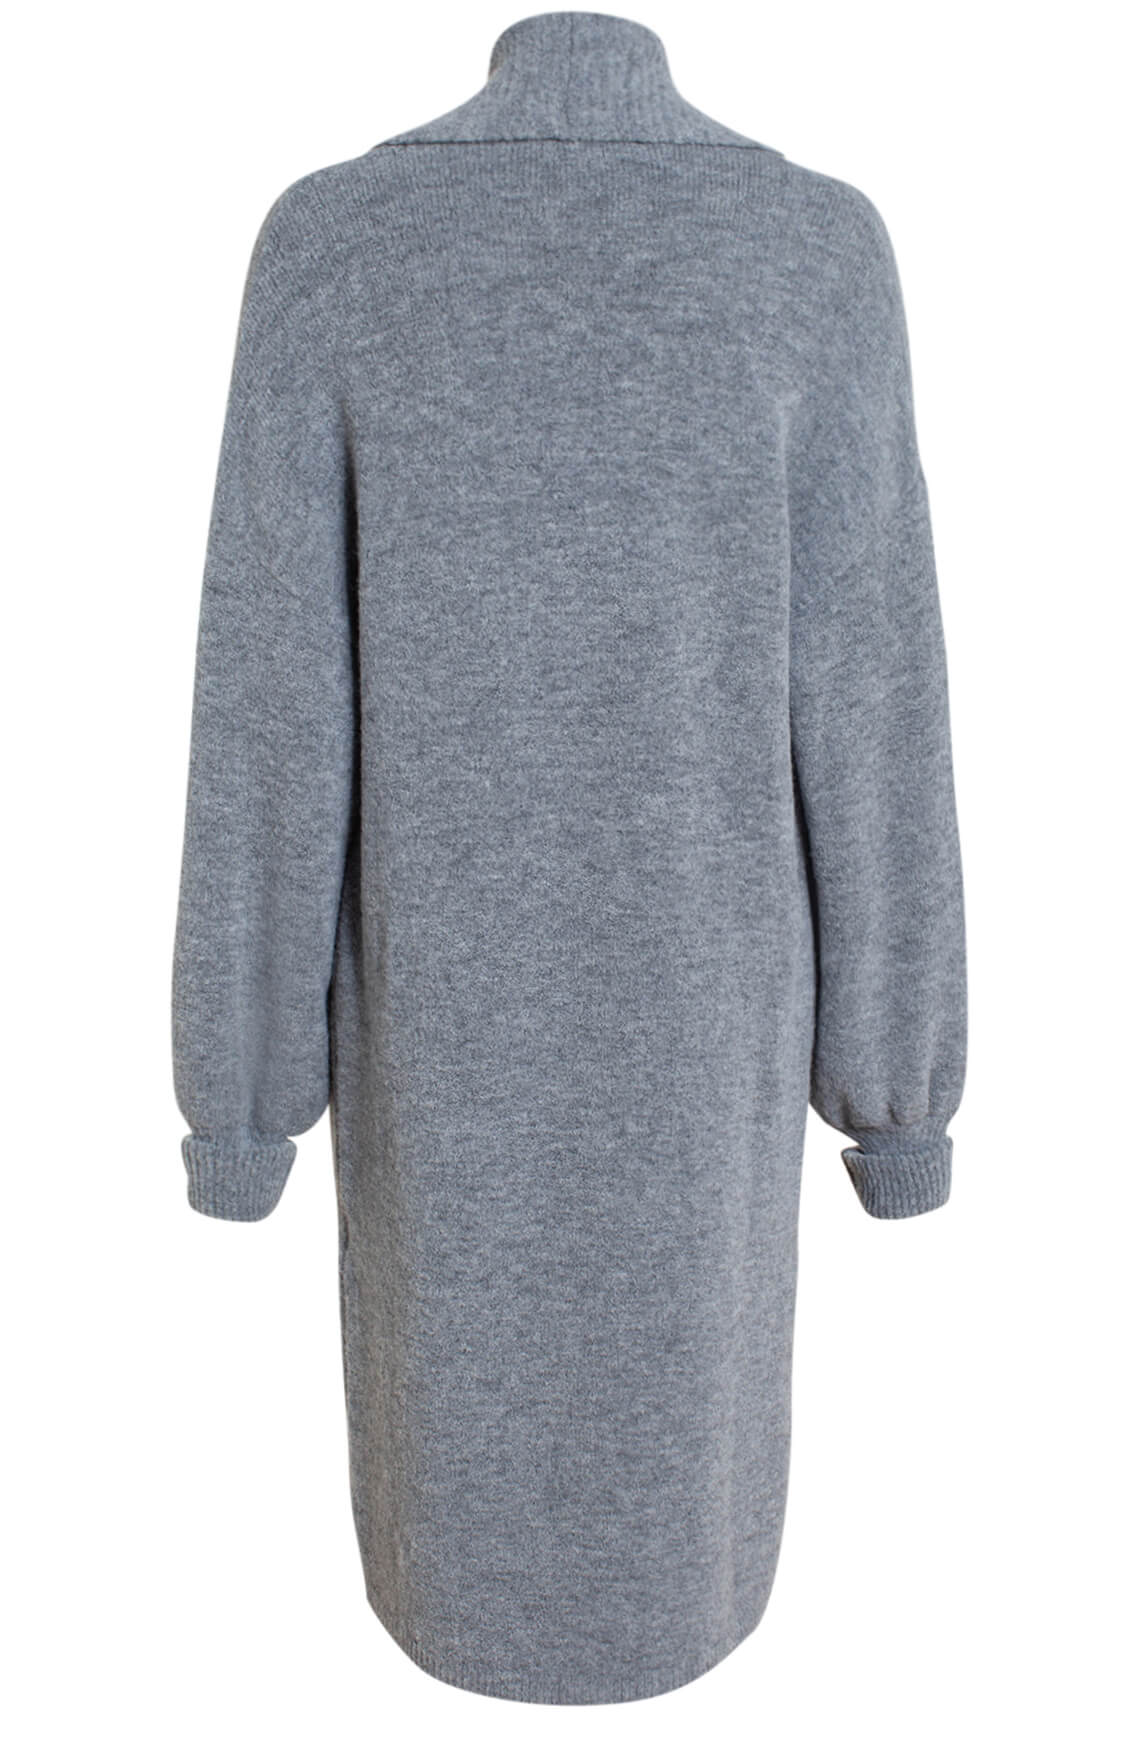 Moscow Dames Jalaine knitted cardigan Grijs